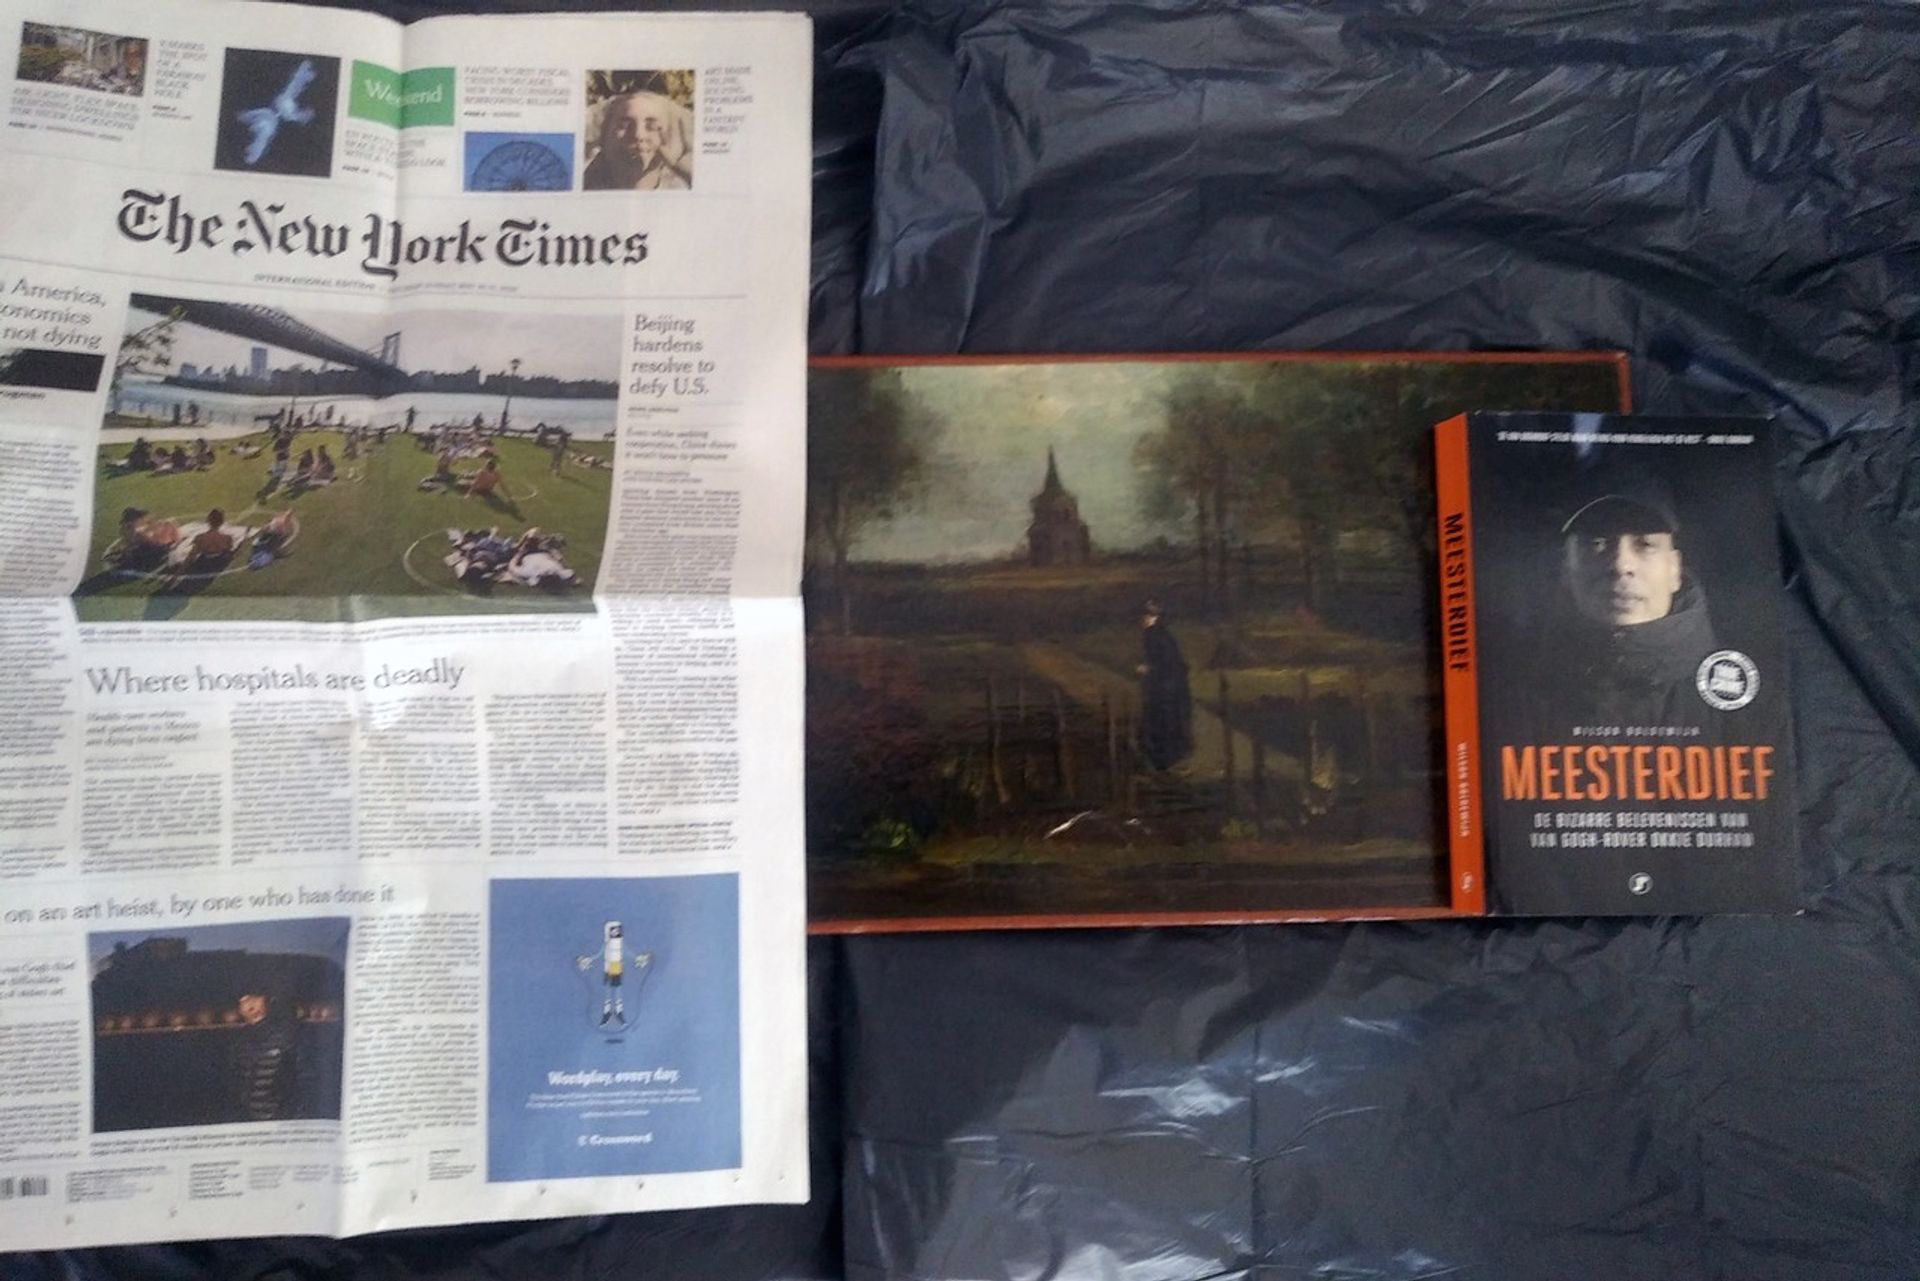 Van Gogh's The Parsonage Garden at Nuenen in the Spring (1884) with a copy of the New York Times (30 May 2020) and Wilson Boldewijn's book Meesterdief (2018)